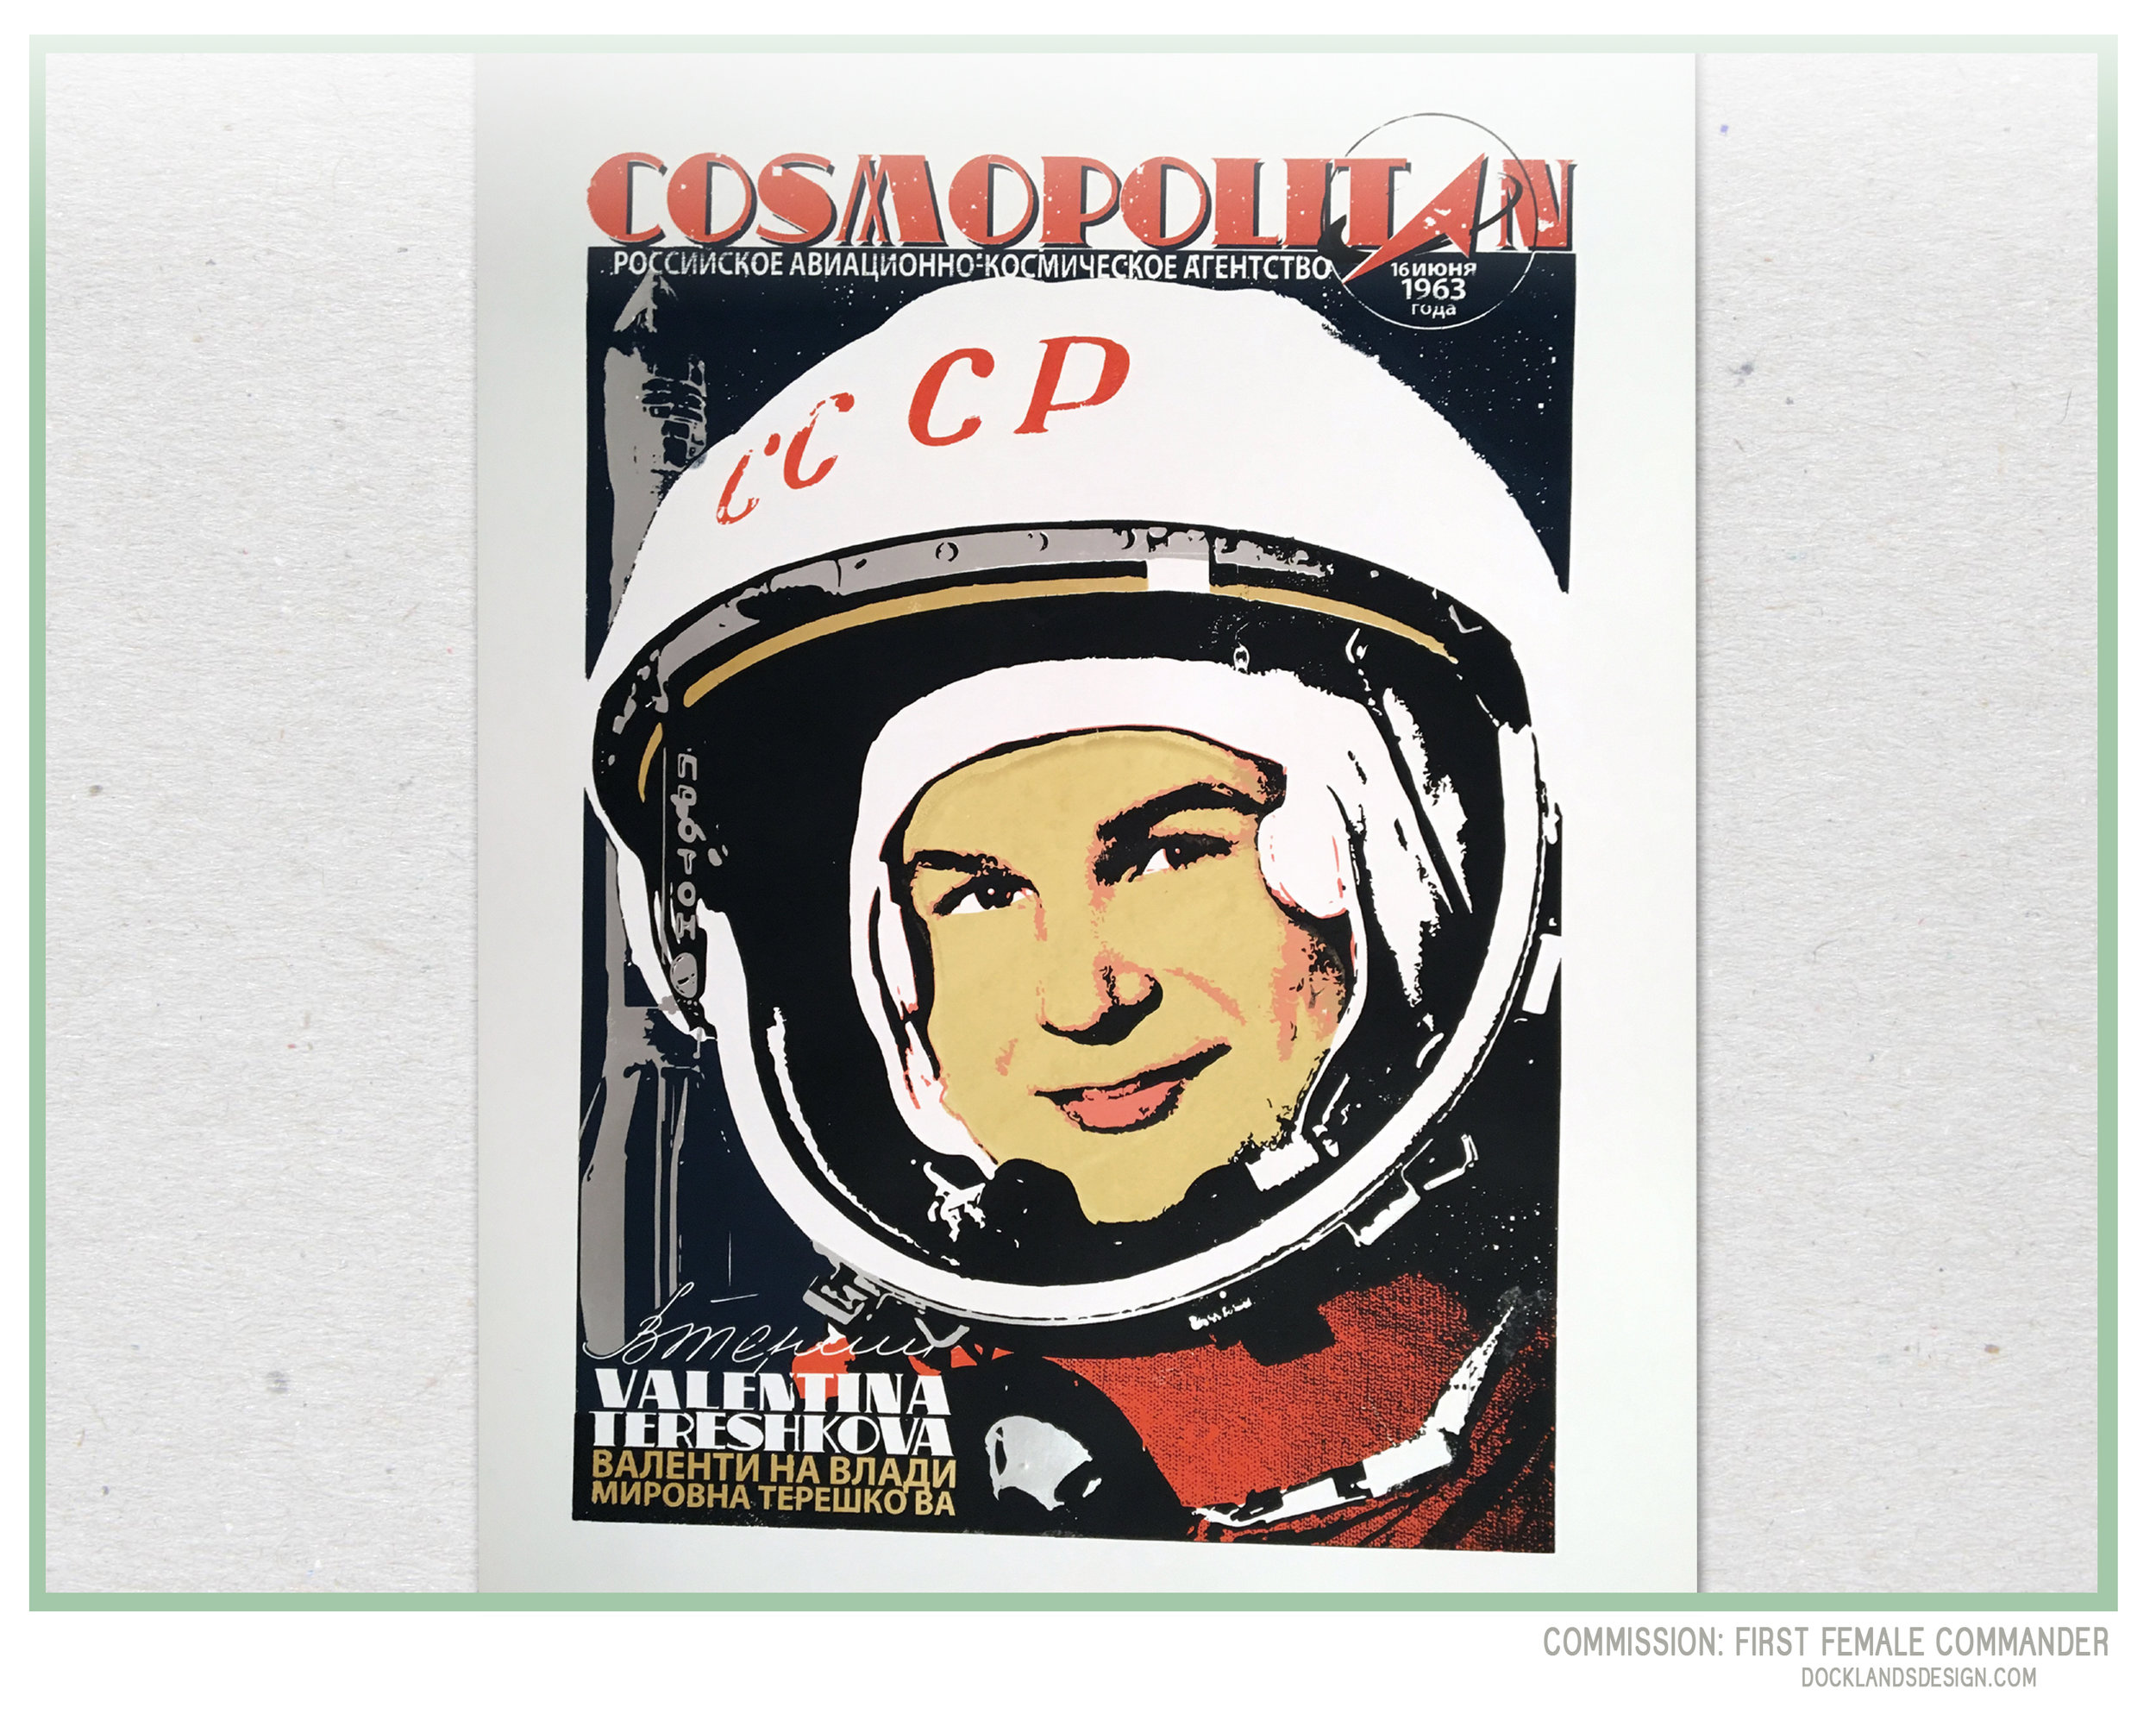 """I was asked if I could design something around the concept of """"Space Communism"""" for a birthday gift. Here is a 26"""" x 26"""" print called """"CosmoNot,"""" the first female commander of a space mission Valentina Tereshkova, Russia 1963. The playfulness comes from a powerful woman, posing for a re-imagined Cosmopolitan magazine cover/poster."""